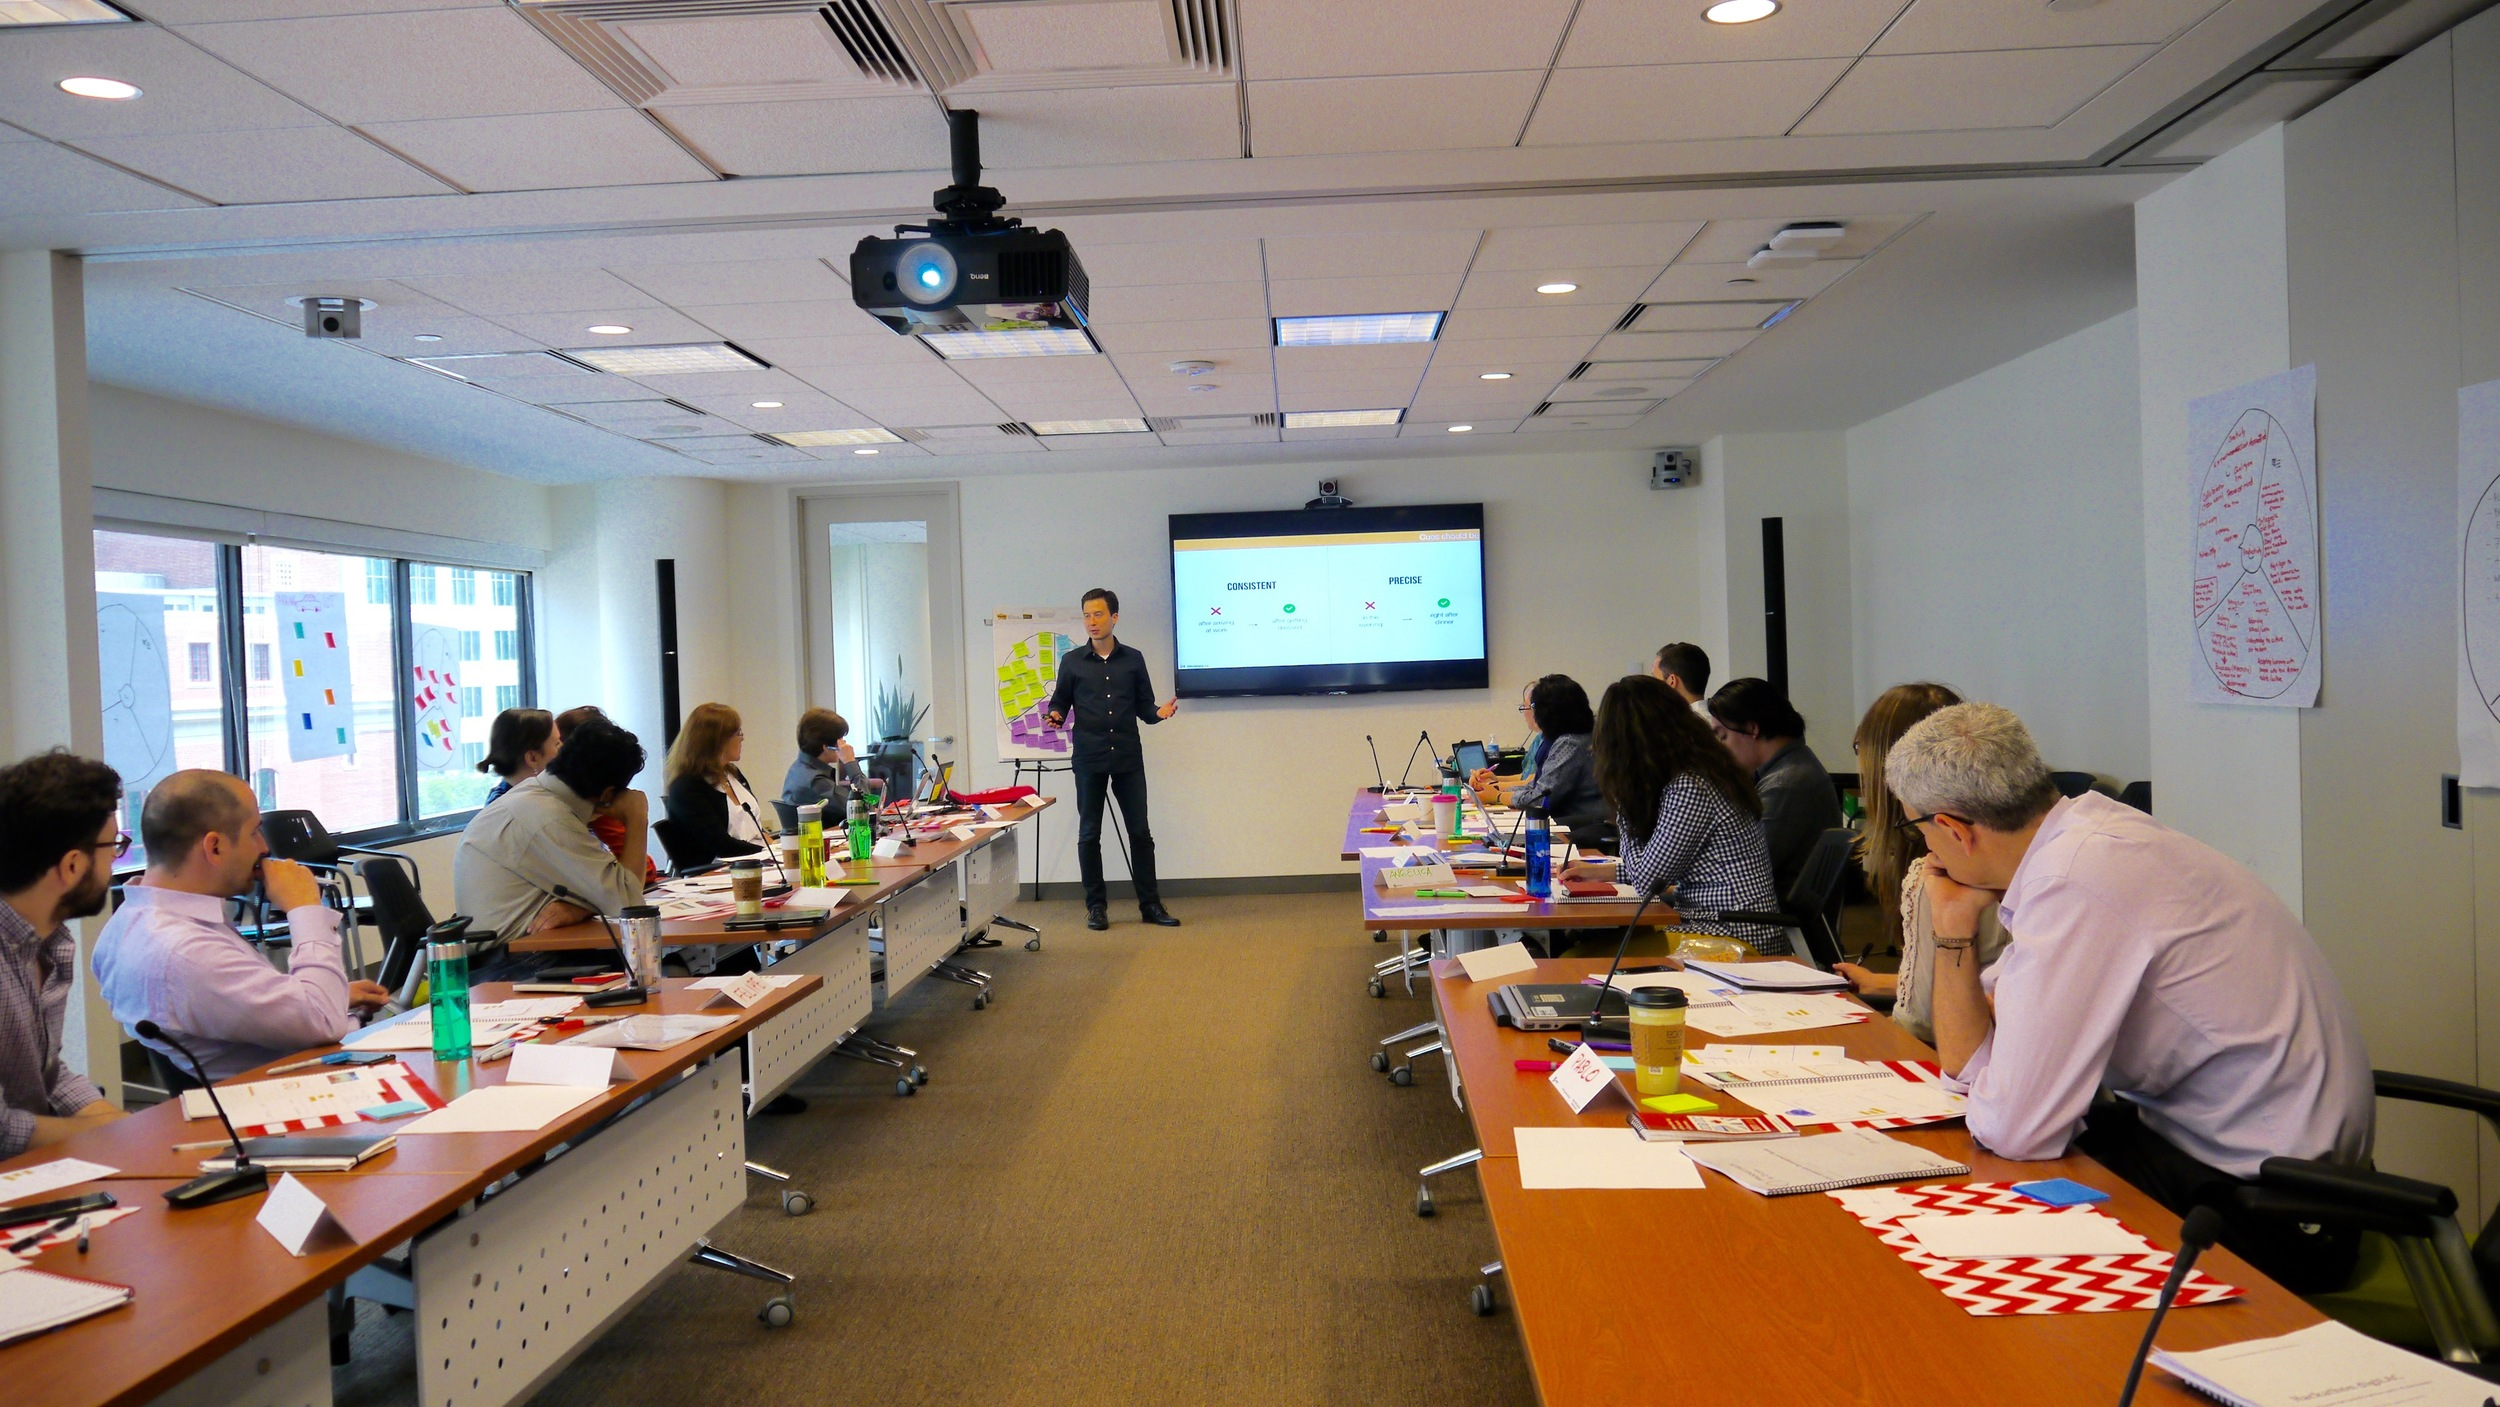 Working with the Inter-American Development Bank in Washington D.C.